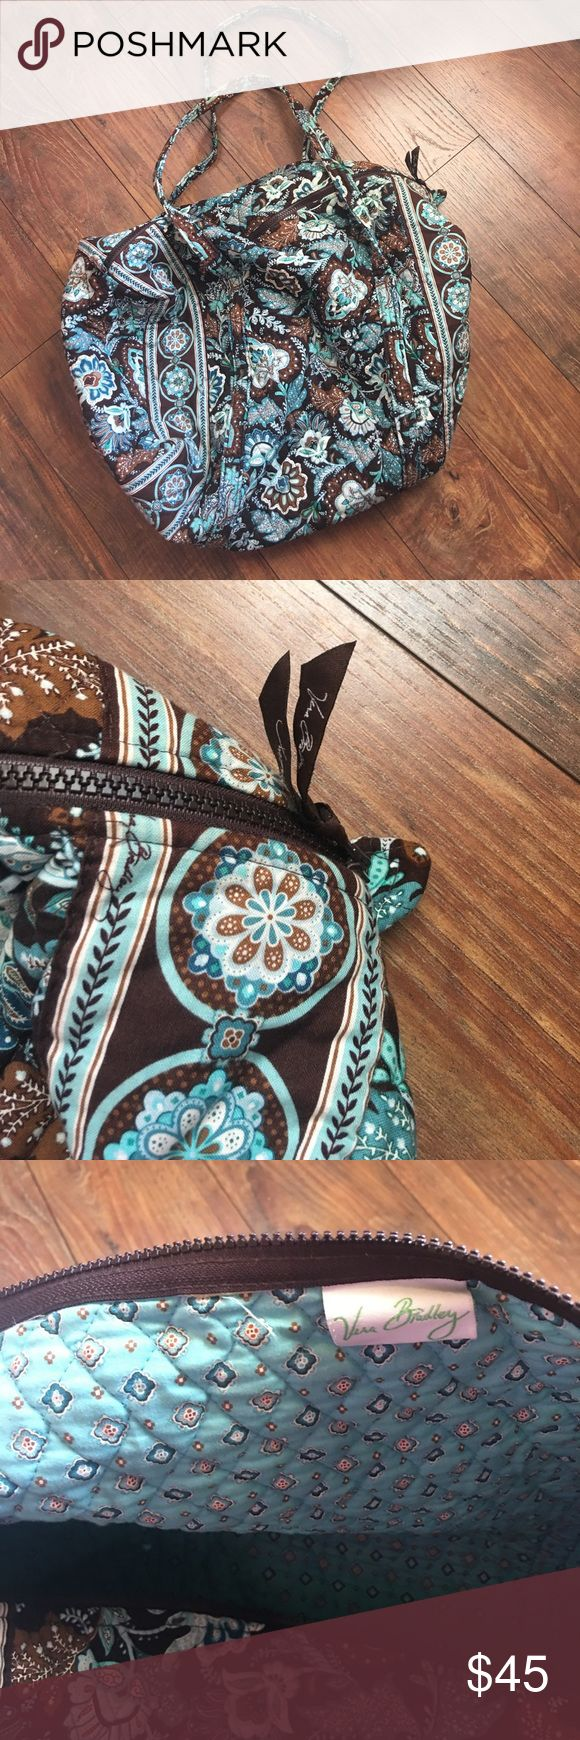 Vera Bradley blue and brown print duffel bag Vera Bradley blue and brown print duffel bag. Perfect condition. 21x16x11 inches. Perfect for a carry on. No holds or trades. ❤️❤️❤️ Vera Bradley Bags Travel Bags